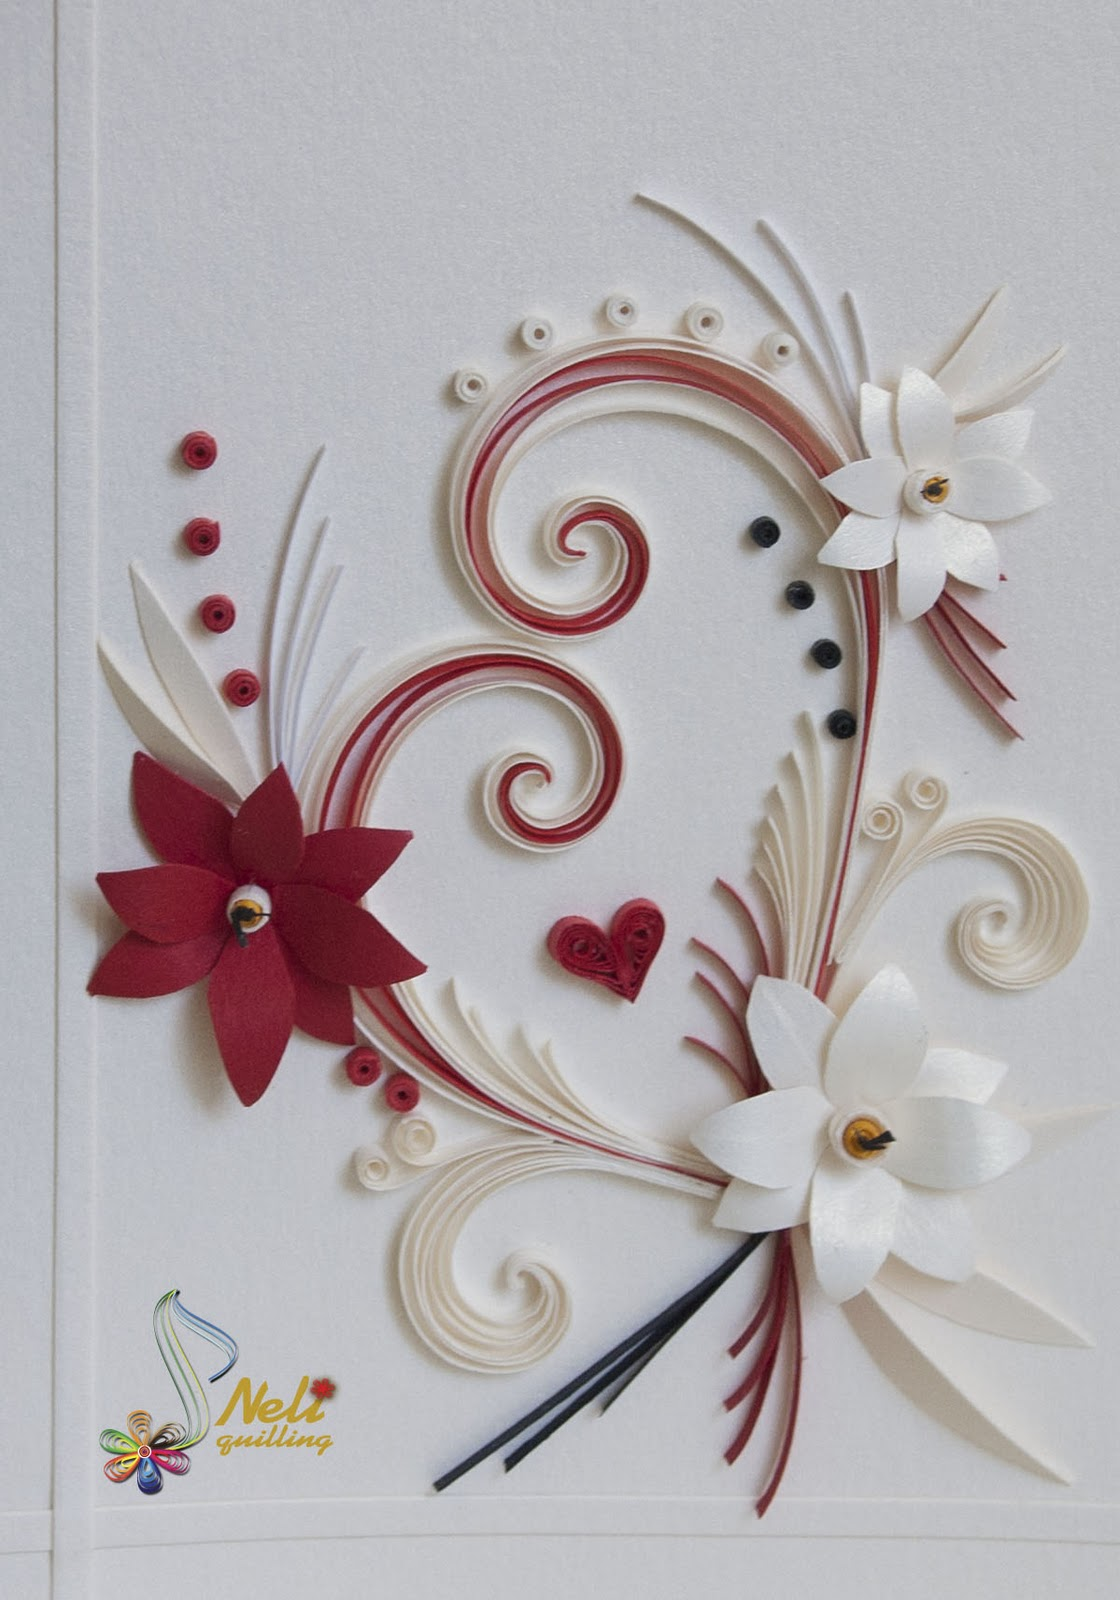 neli quilling art quilling cards  with love